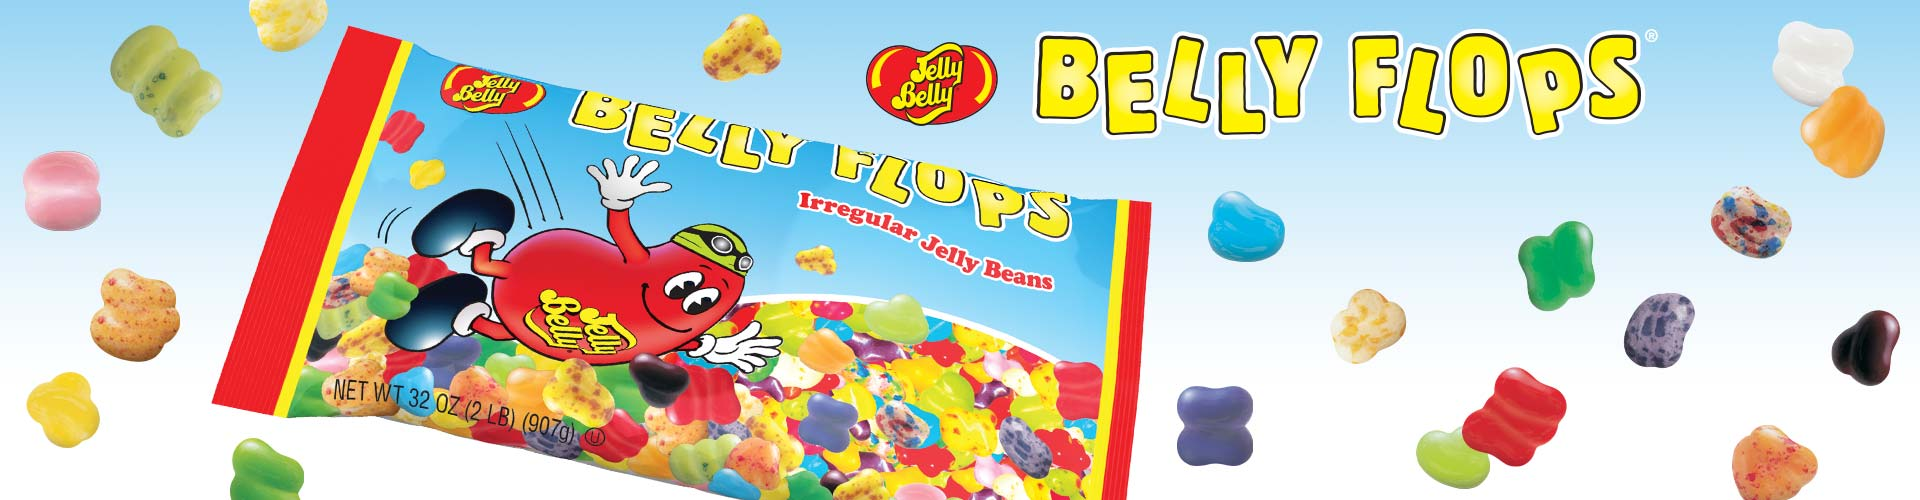 Jelly Belly Belly Flops